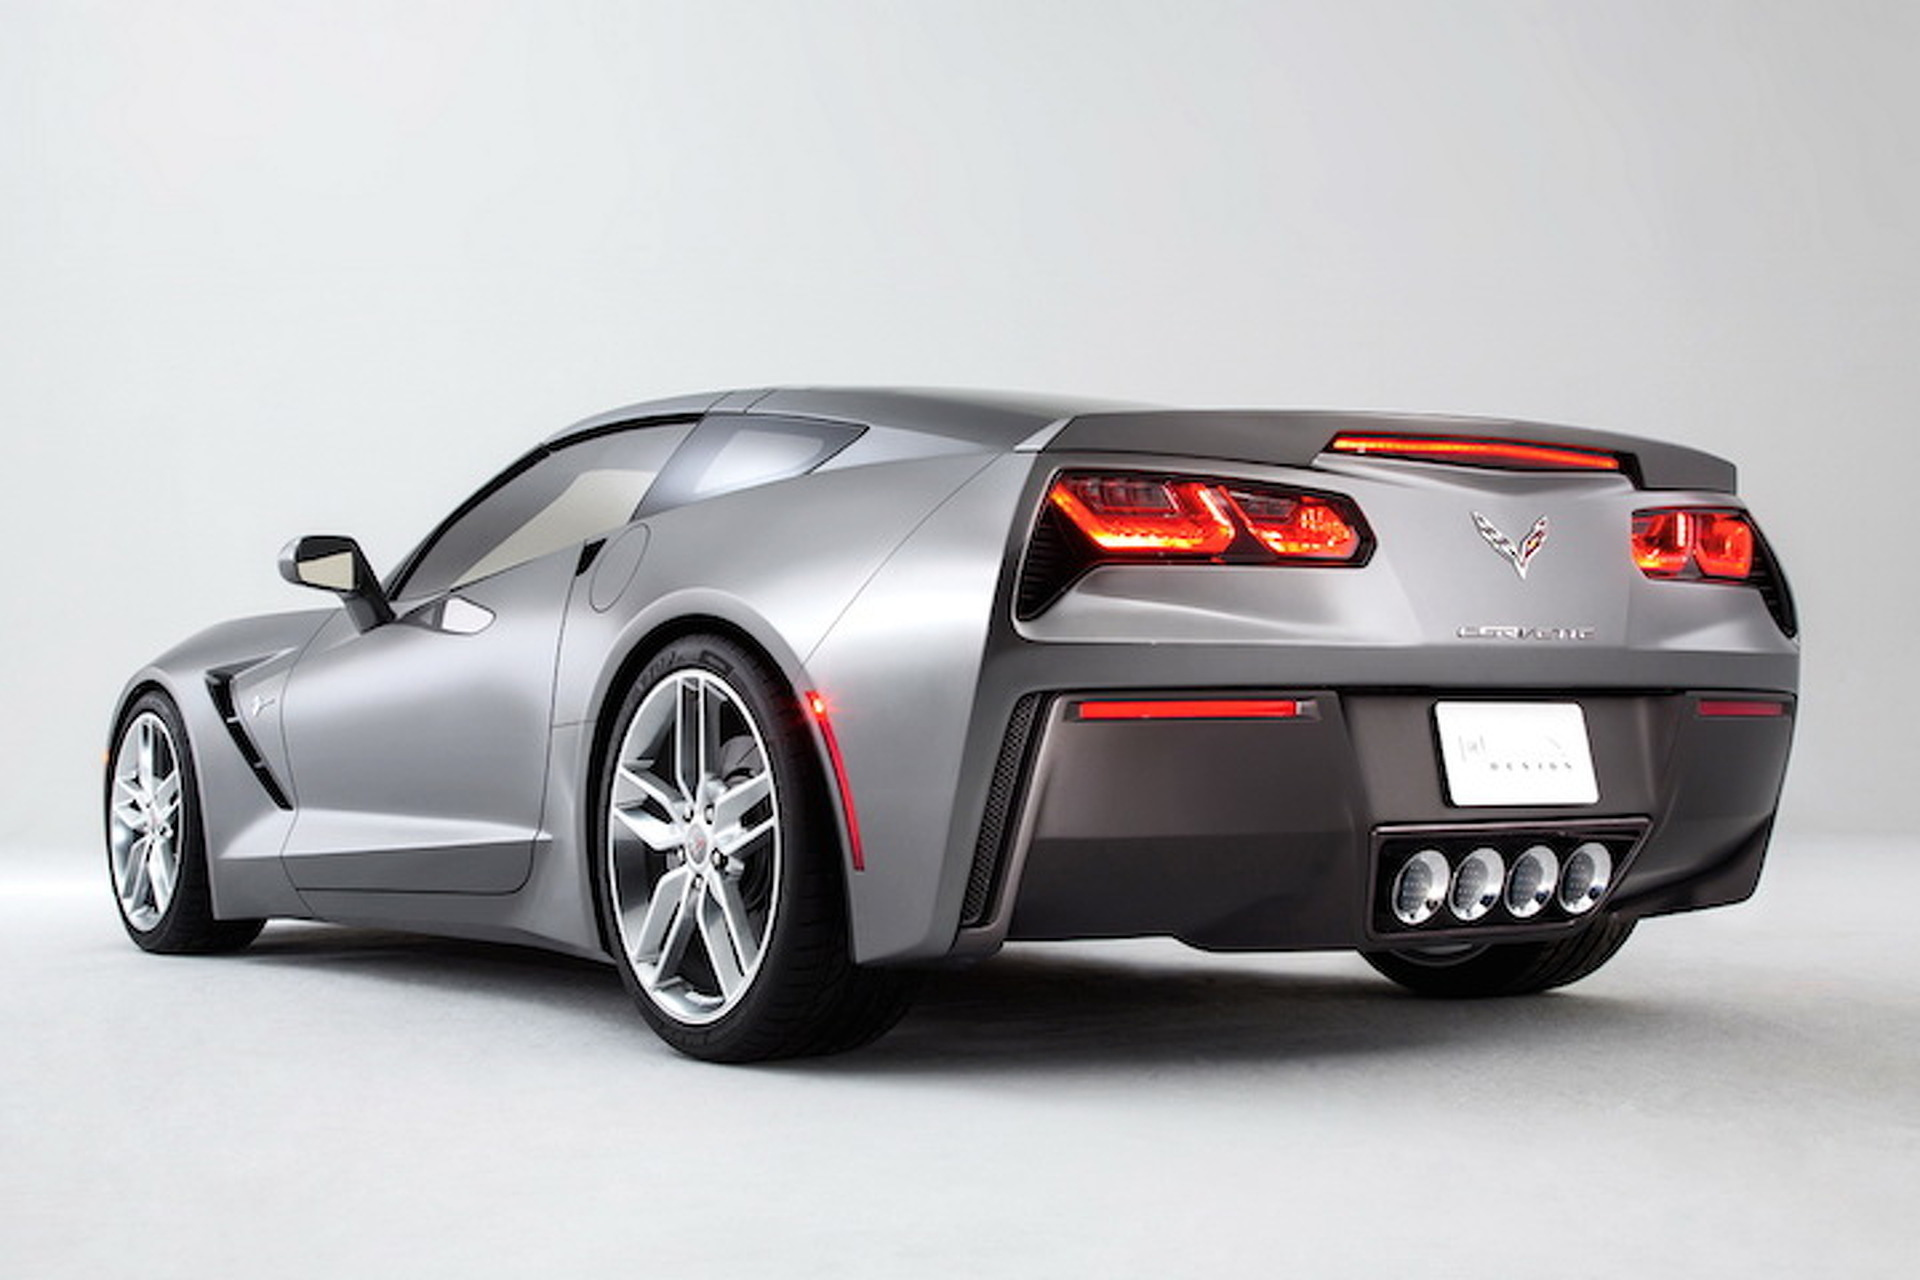 Chevy Corvette Sales Still Dominate Despite Slow Month